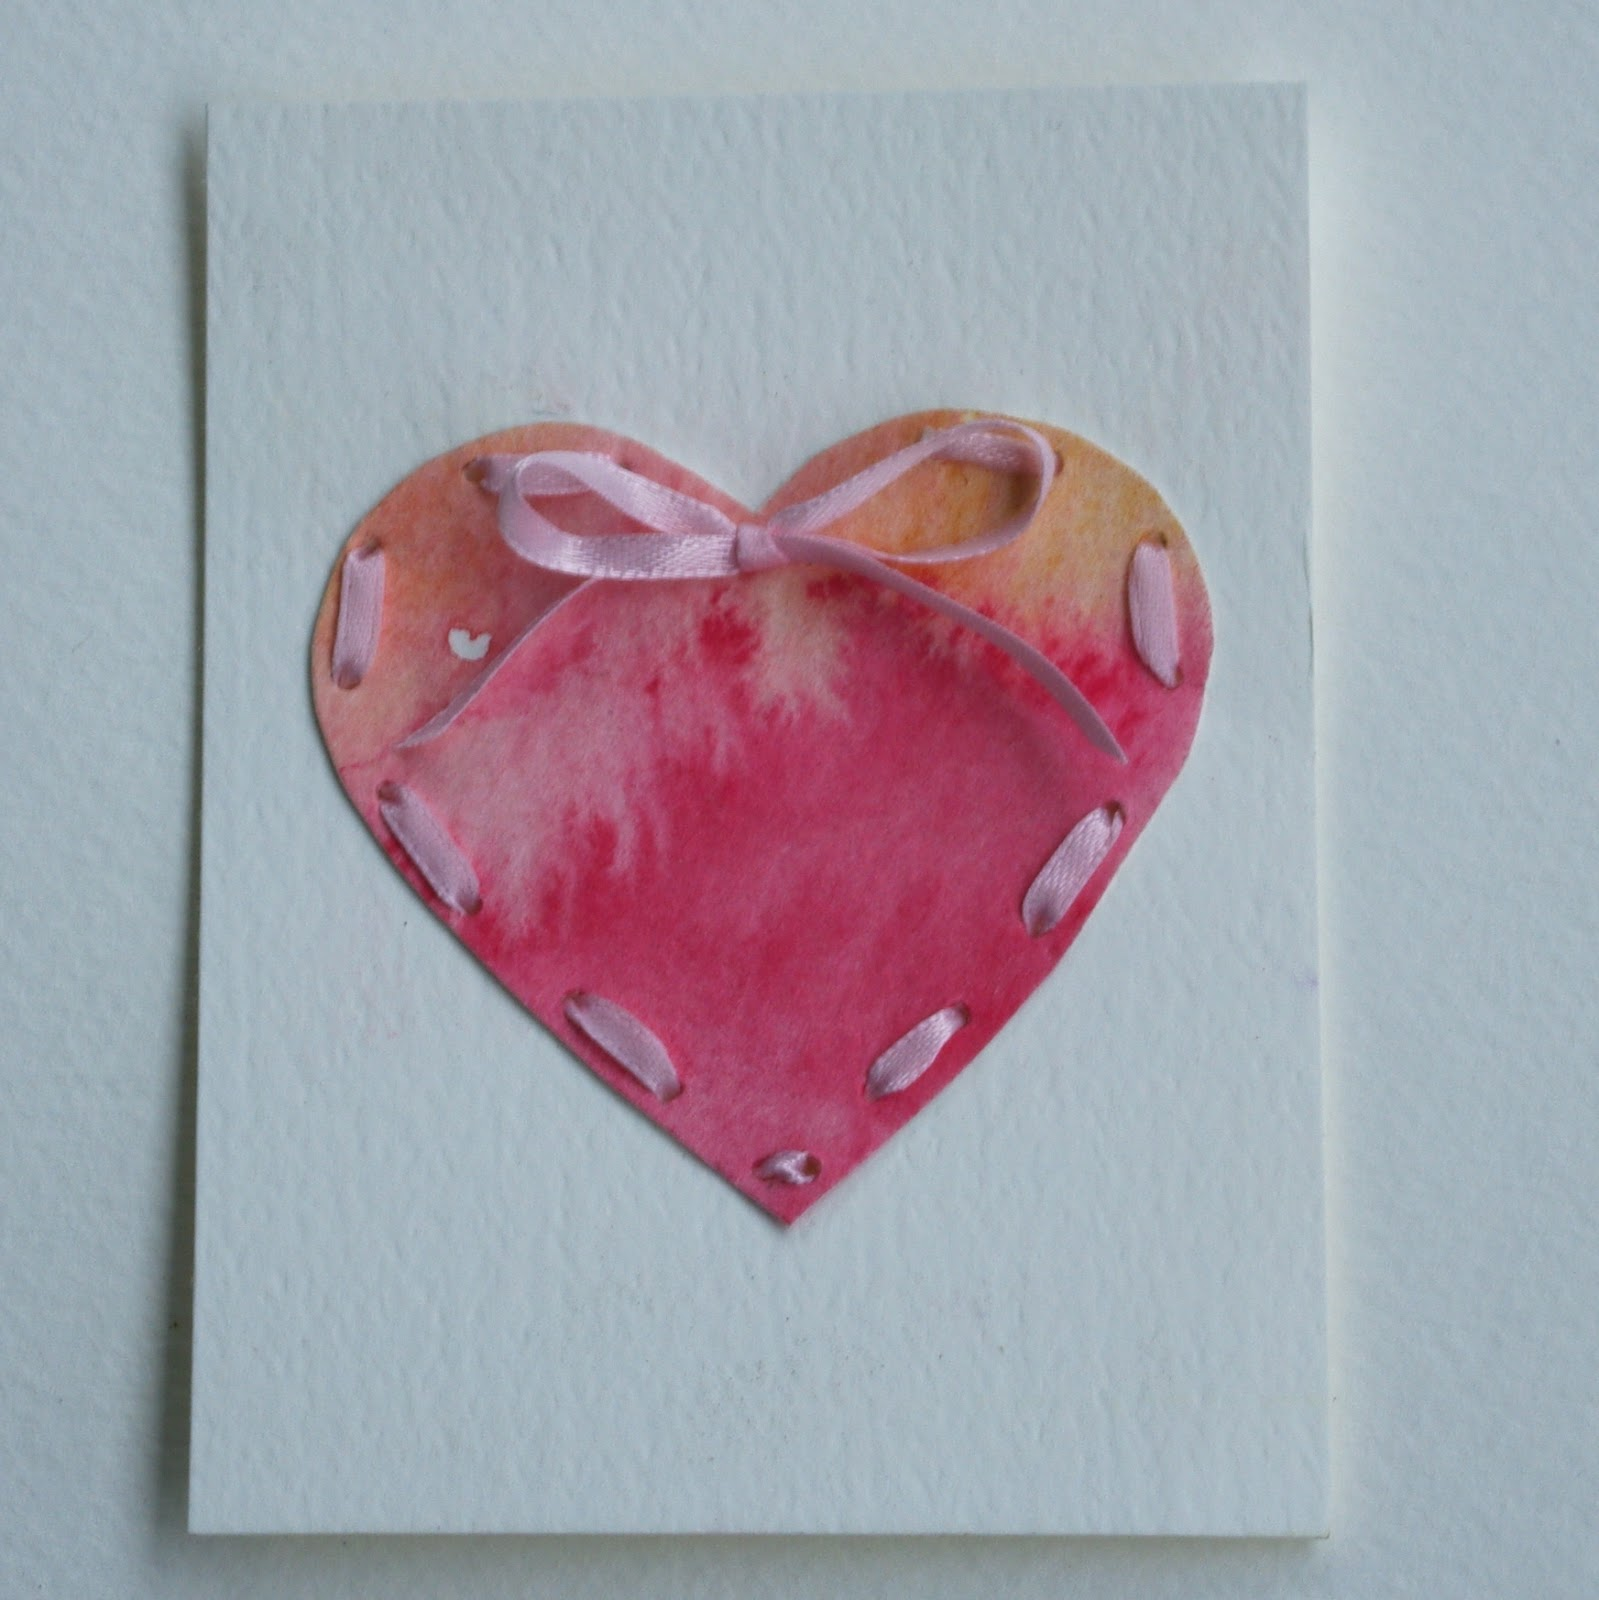 Passengers On A Little Spaceship Handmade Valentine Ideas For